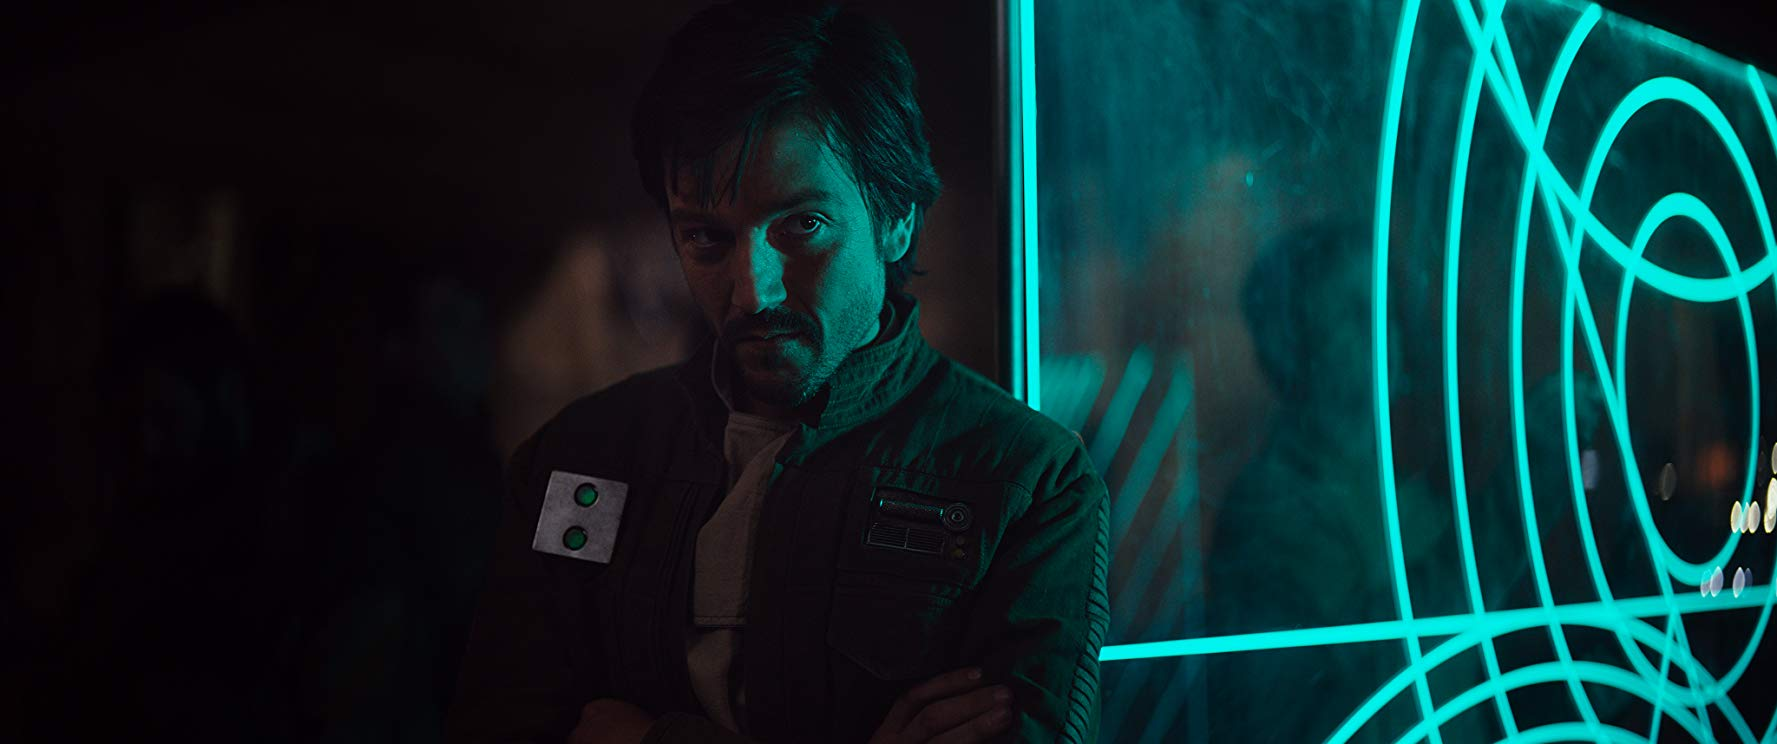 Diego Luna stands in the green light of a nearby monitor.